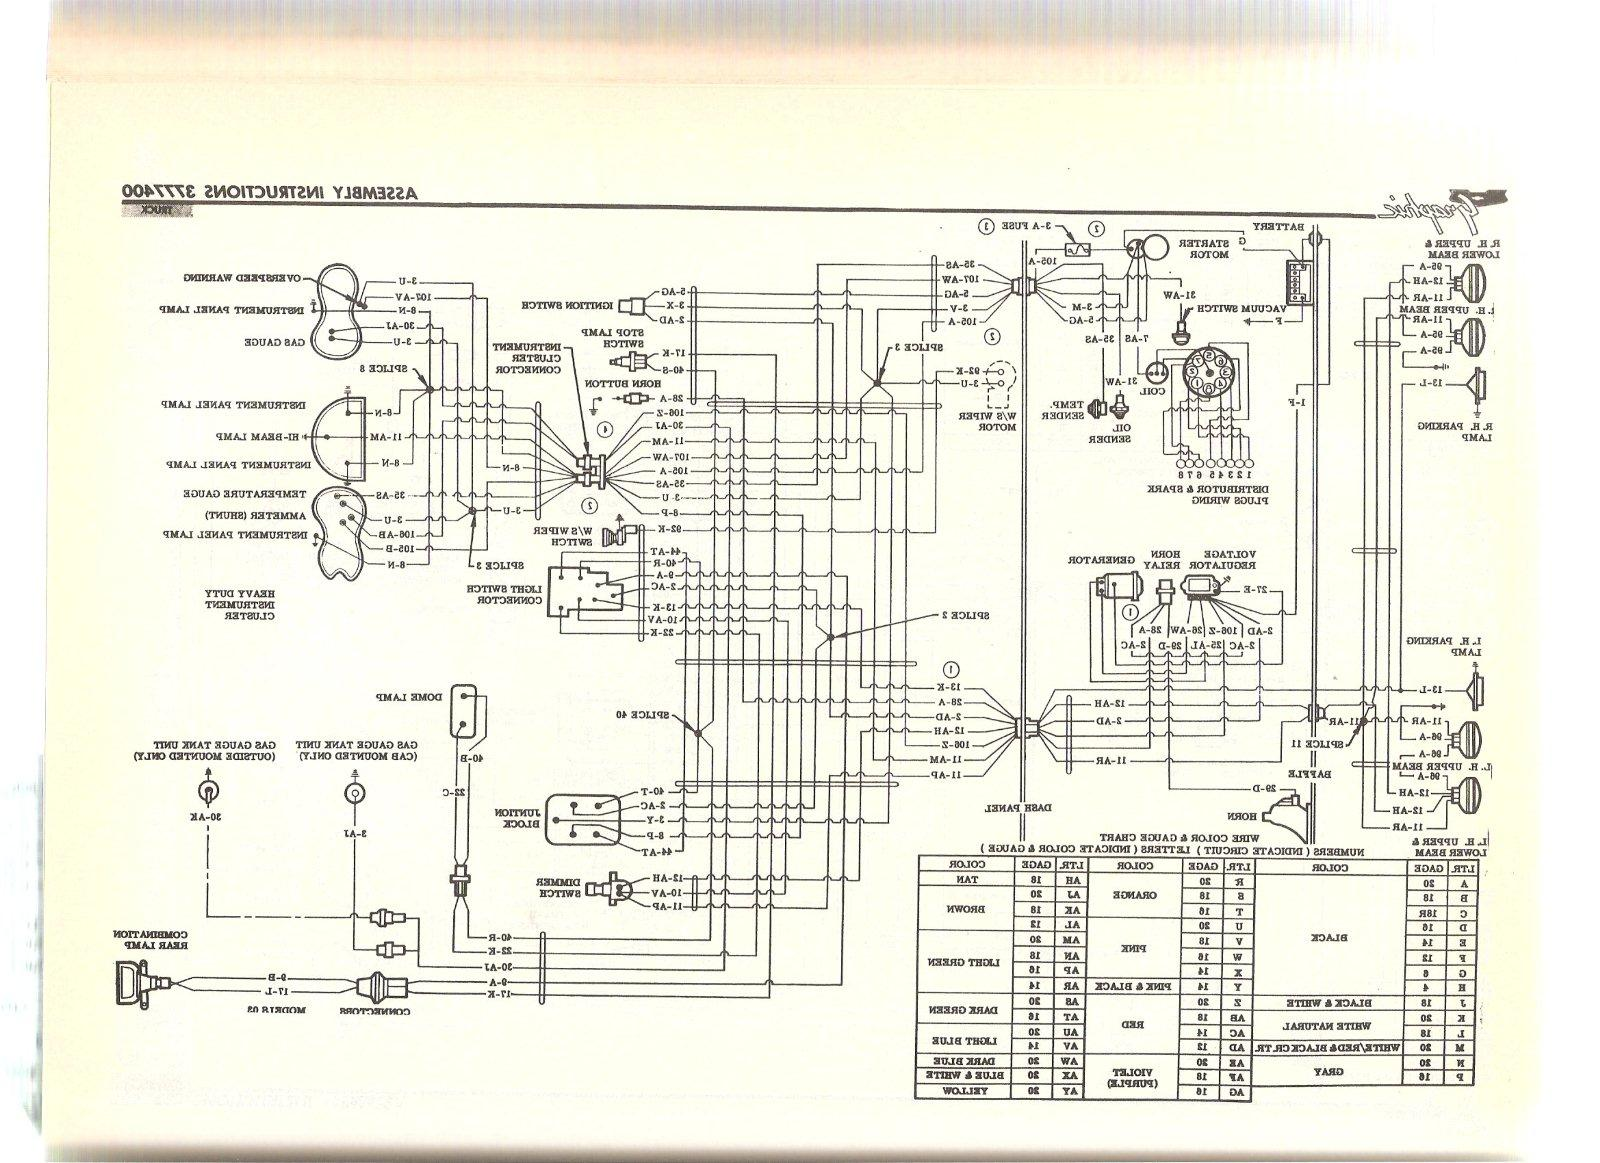 1967 Cadillac Alternator Wiring Diagram Electrical Schematics 1999 Escalade Online Circuit U2022 Prestolite